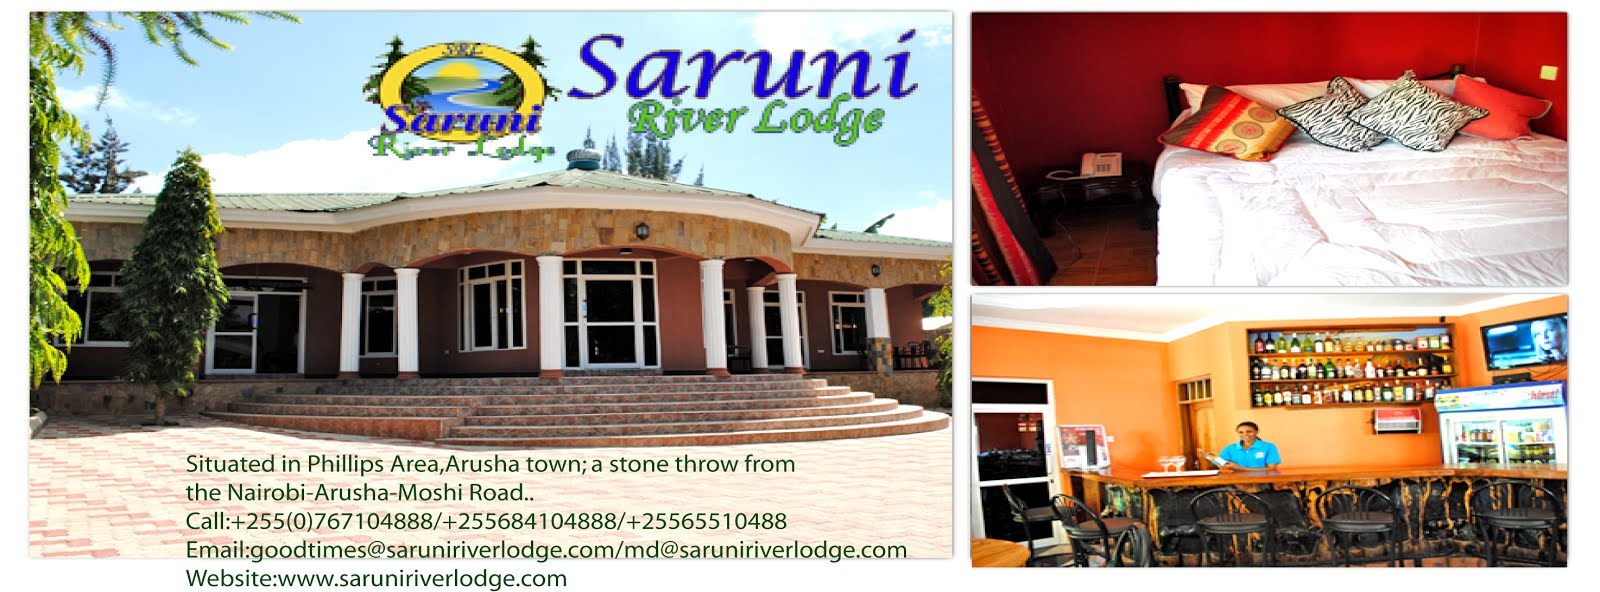 Saruni River Lodge